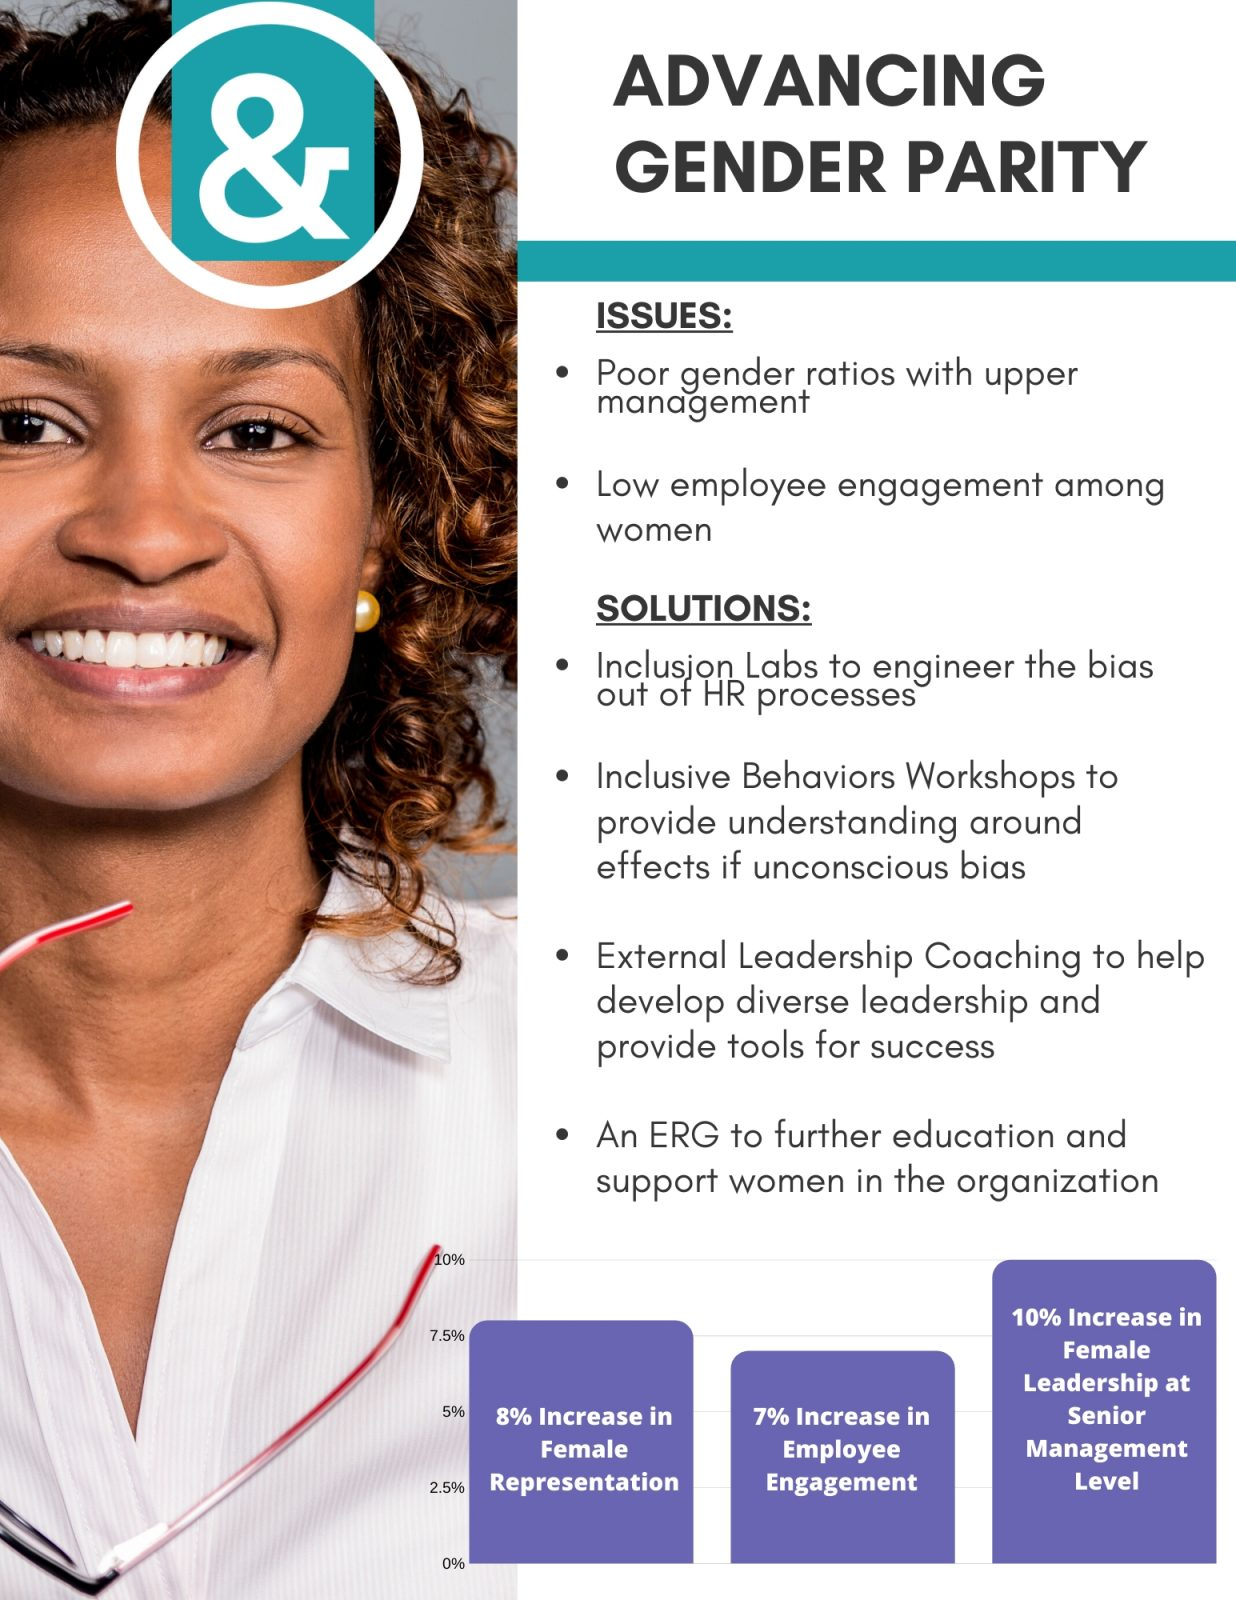 Leadership Gender Parity Case Study - Lead Inclusively